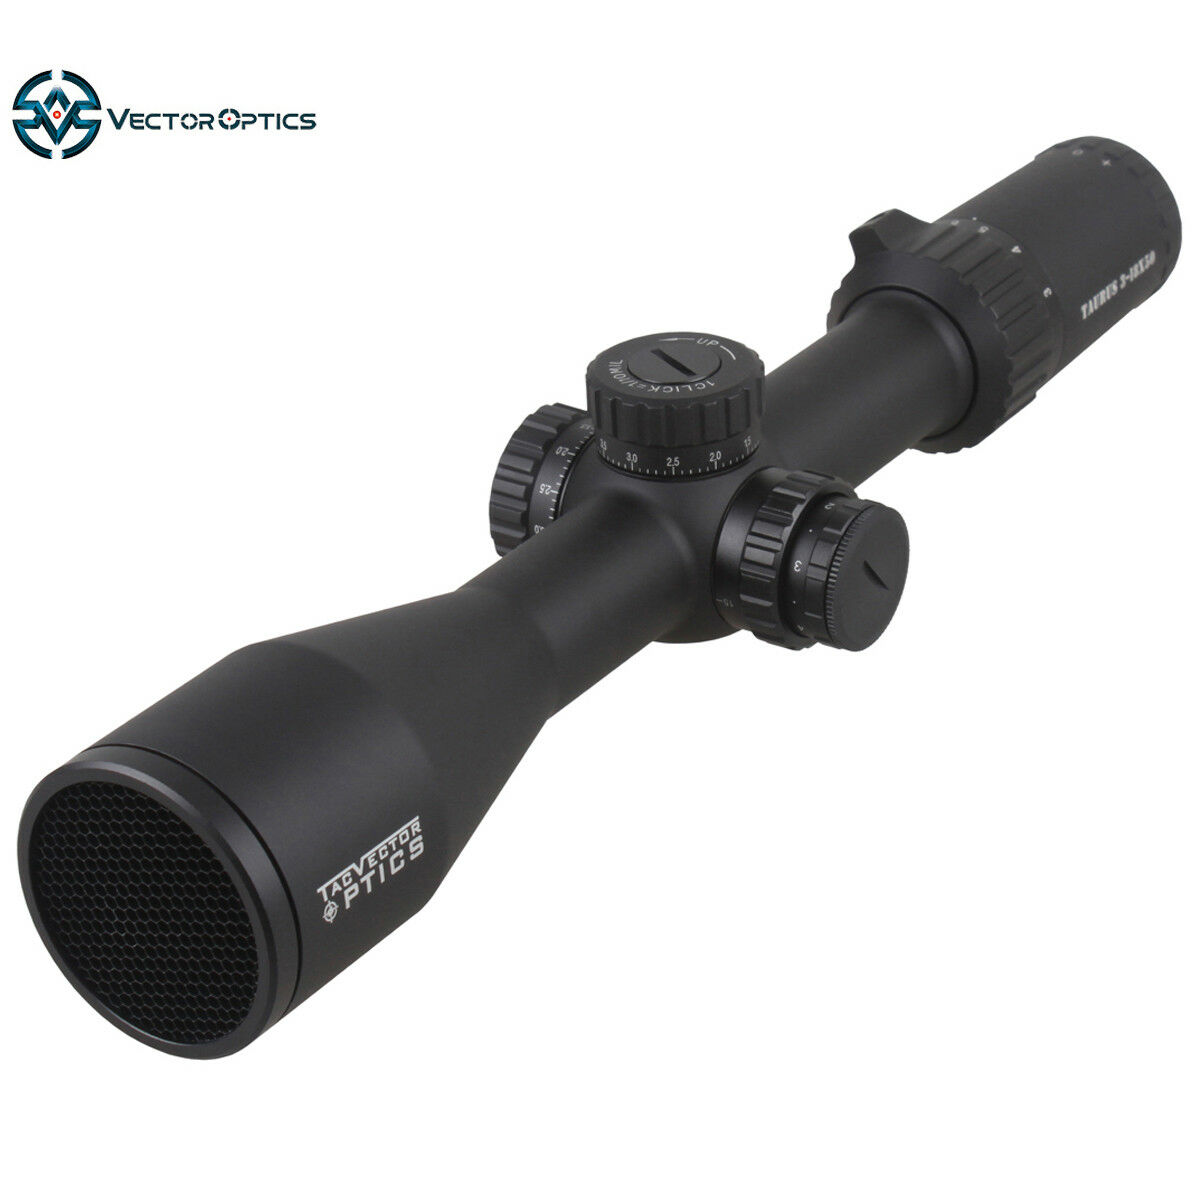 Taurus 3-18X50 Alemán Tech Diamante claro FFP Tactical Caza Sniper Mira de Rifle